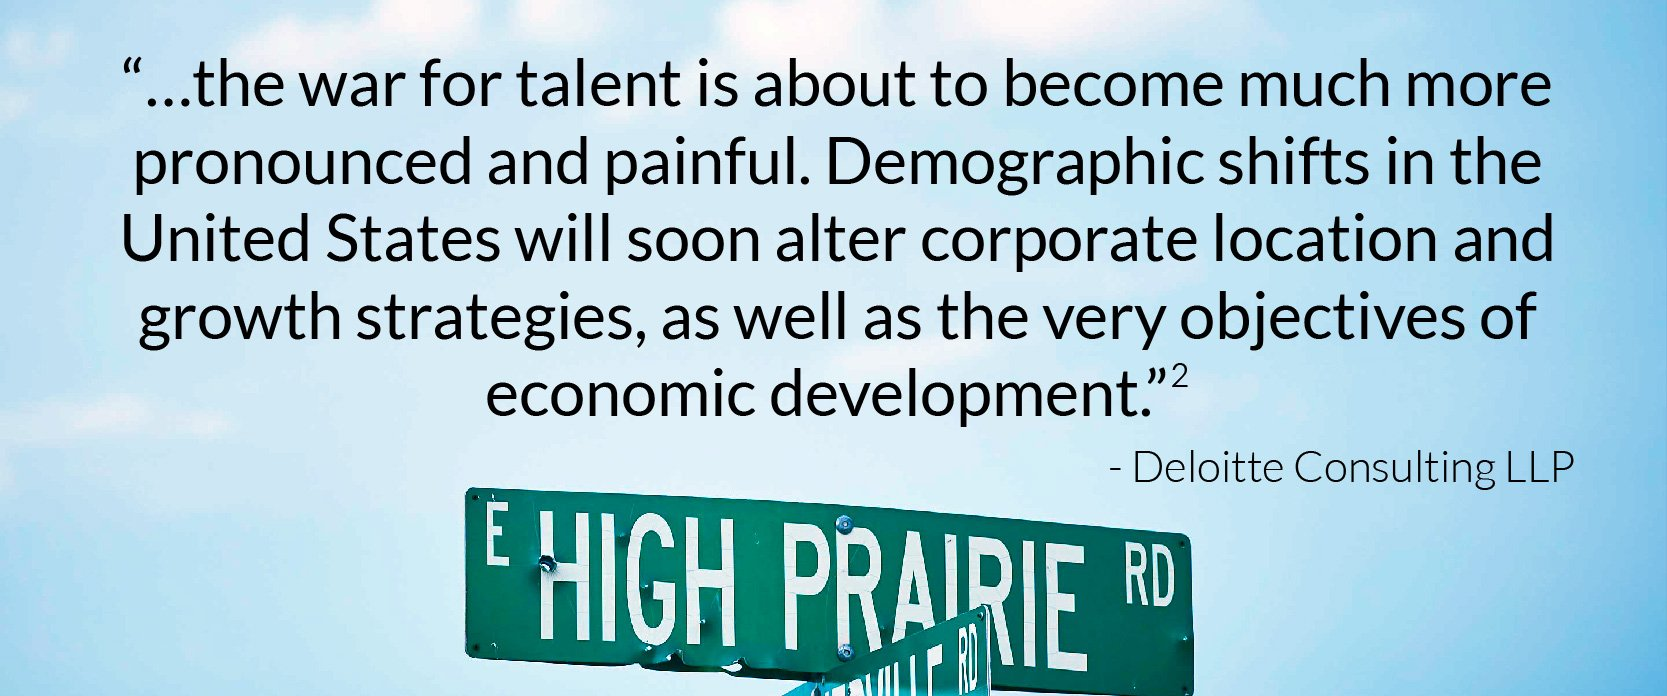 """""""…the war for talent is about to become much more pronounced and painful. Demographic shifts in the United States will soon alter corporate location and growth strategies, as well as the very objectives of economic development."""""""